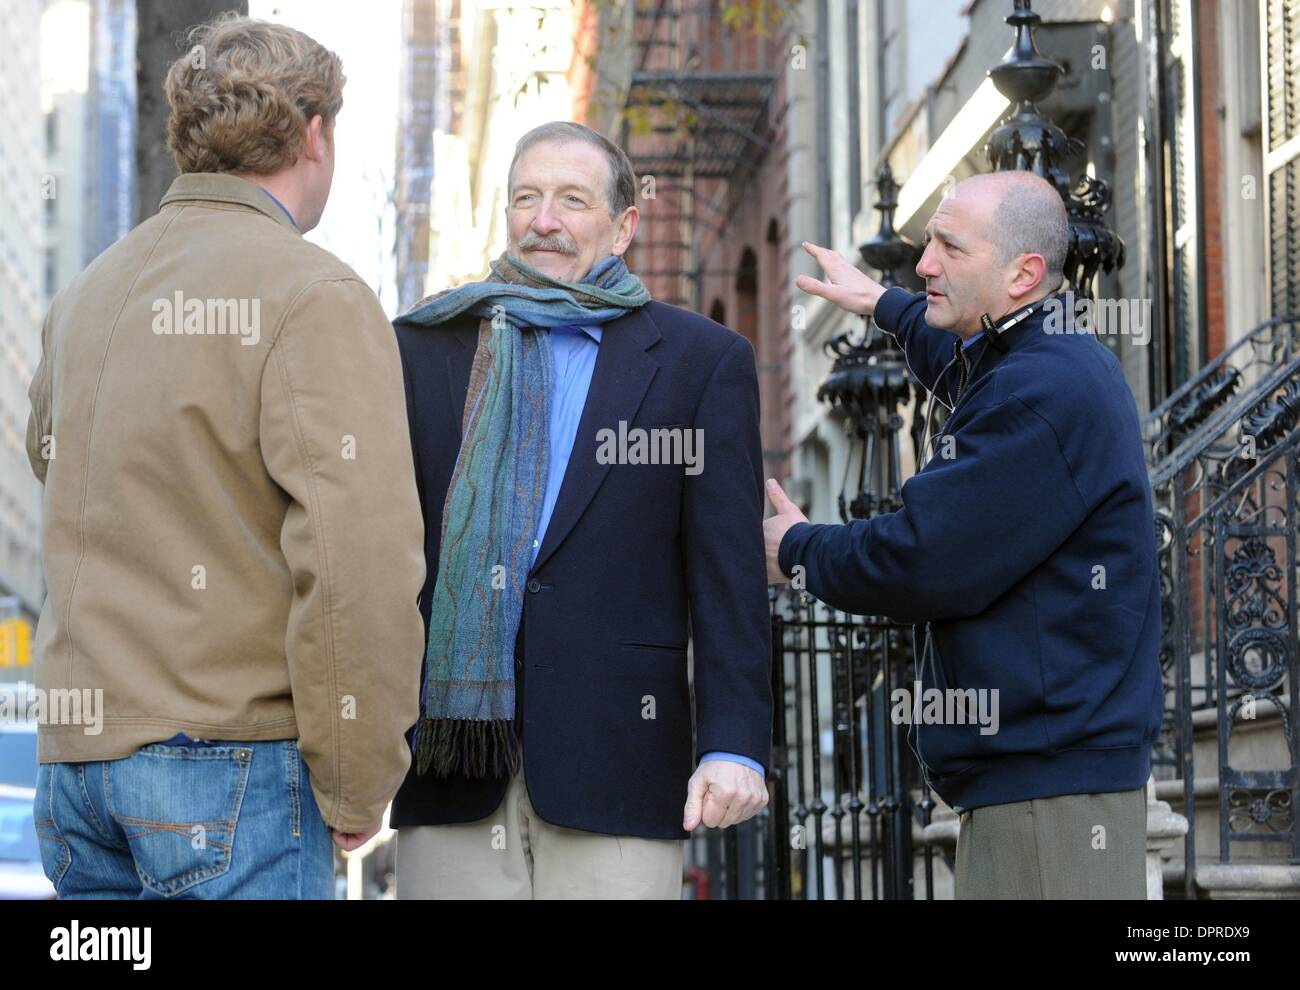 Dec 04, 2008 - Manhattan, New York, USA - 'This Old House' taping with host KEVIN O'CONNOR (L) with special guest CHARLES LOCKWOOD (C) and director DAVID VOS (R) at the historic Merchant's House Museum in the East Village.  (Credit Image: © Bryan Smith/ZUMA Press) RESTRICTIONS:  * New York City Newspapers Rights OUT * - Stock Image